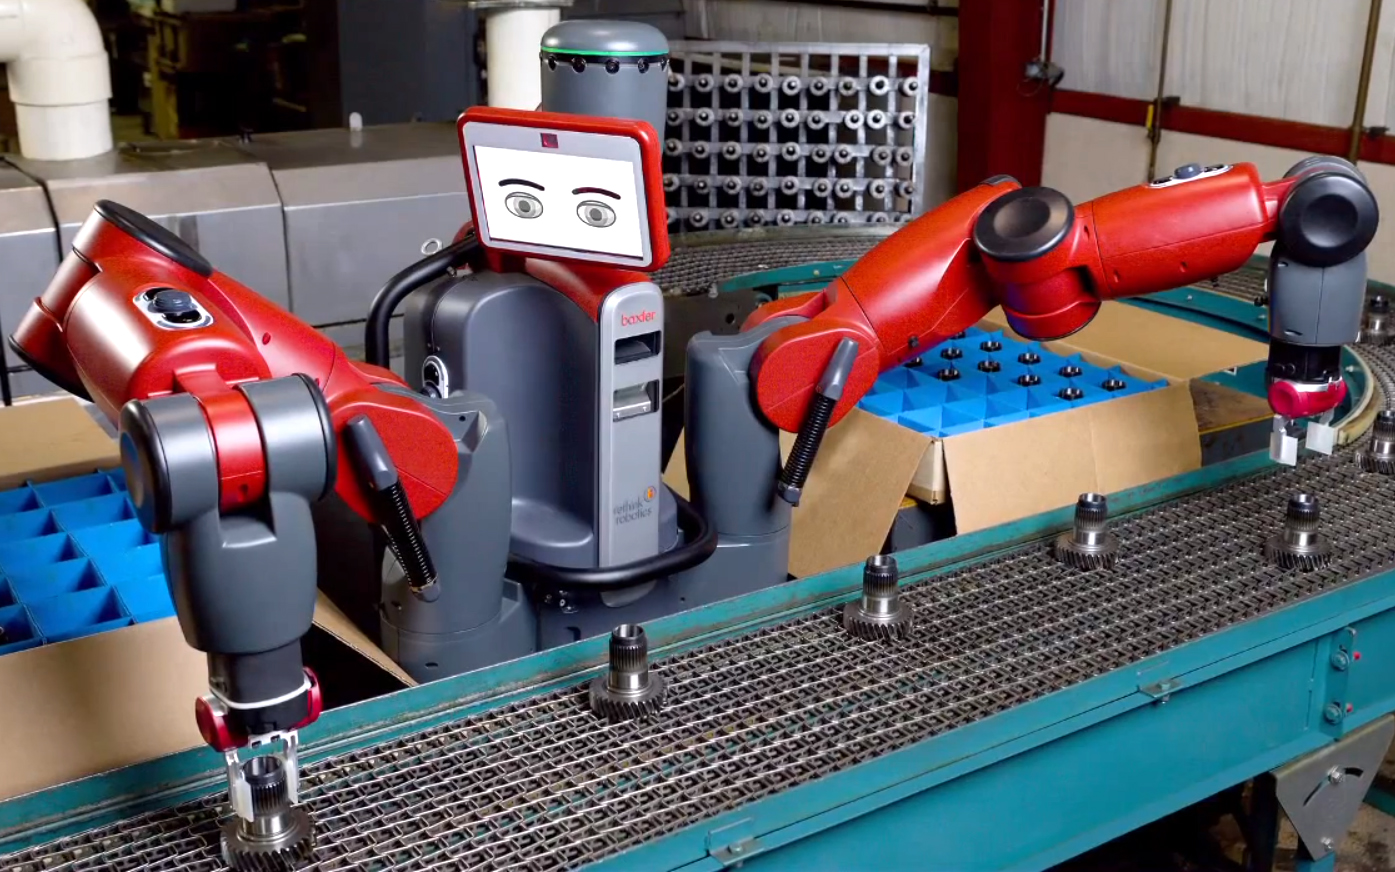 A glimpse of the future: Baxter the robot